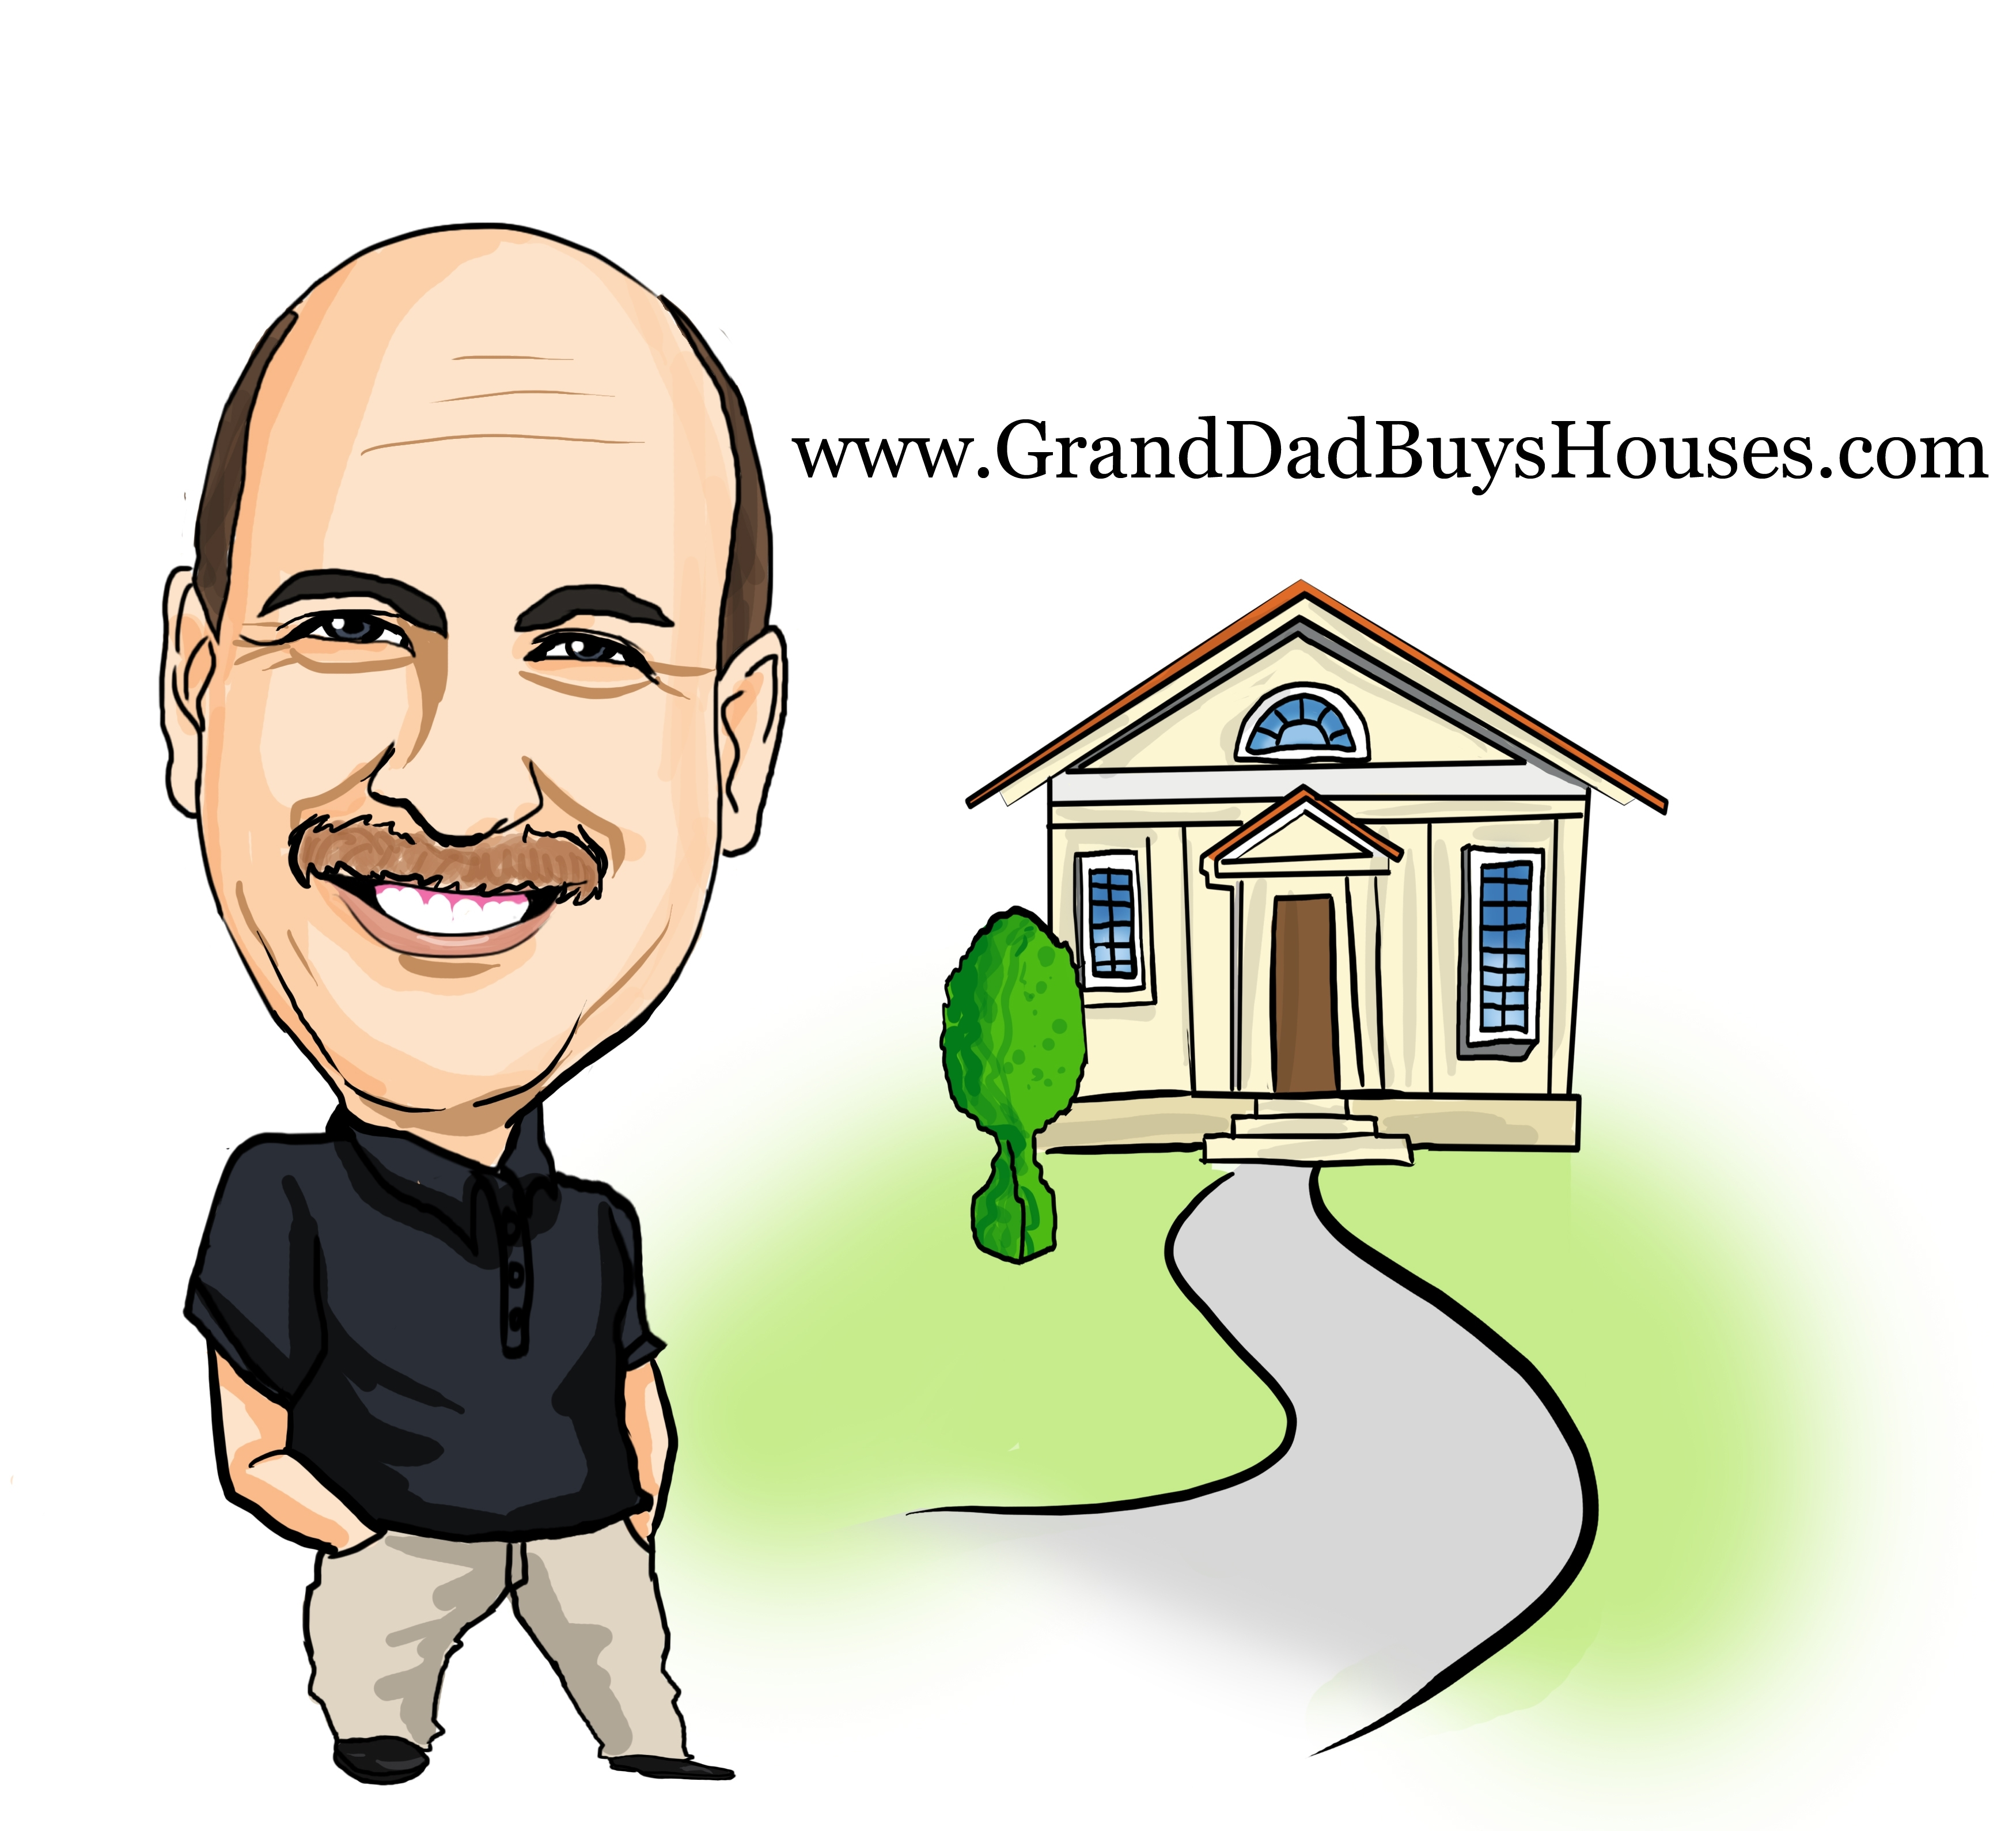 Grand Dad Buys Houses fast for Cash